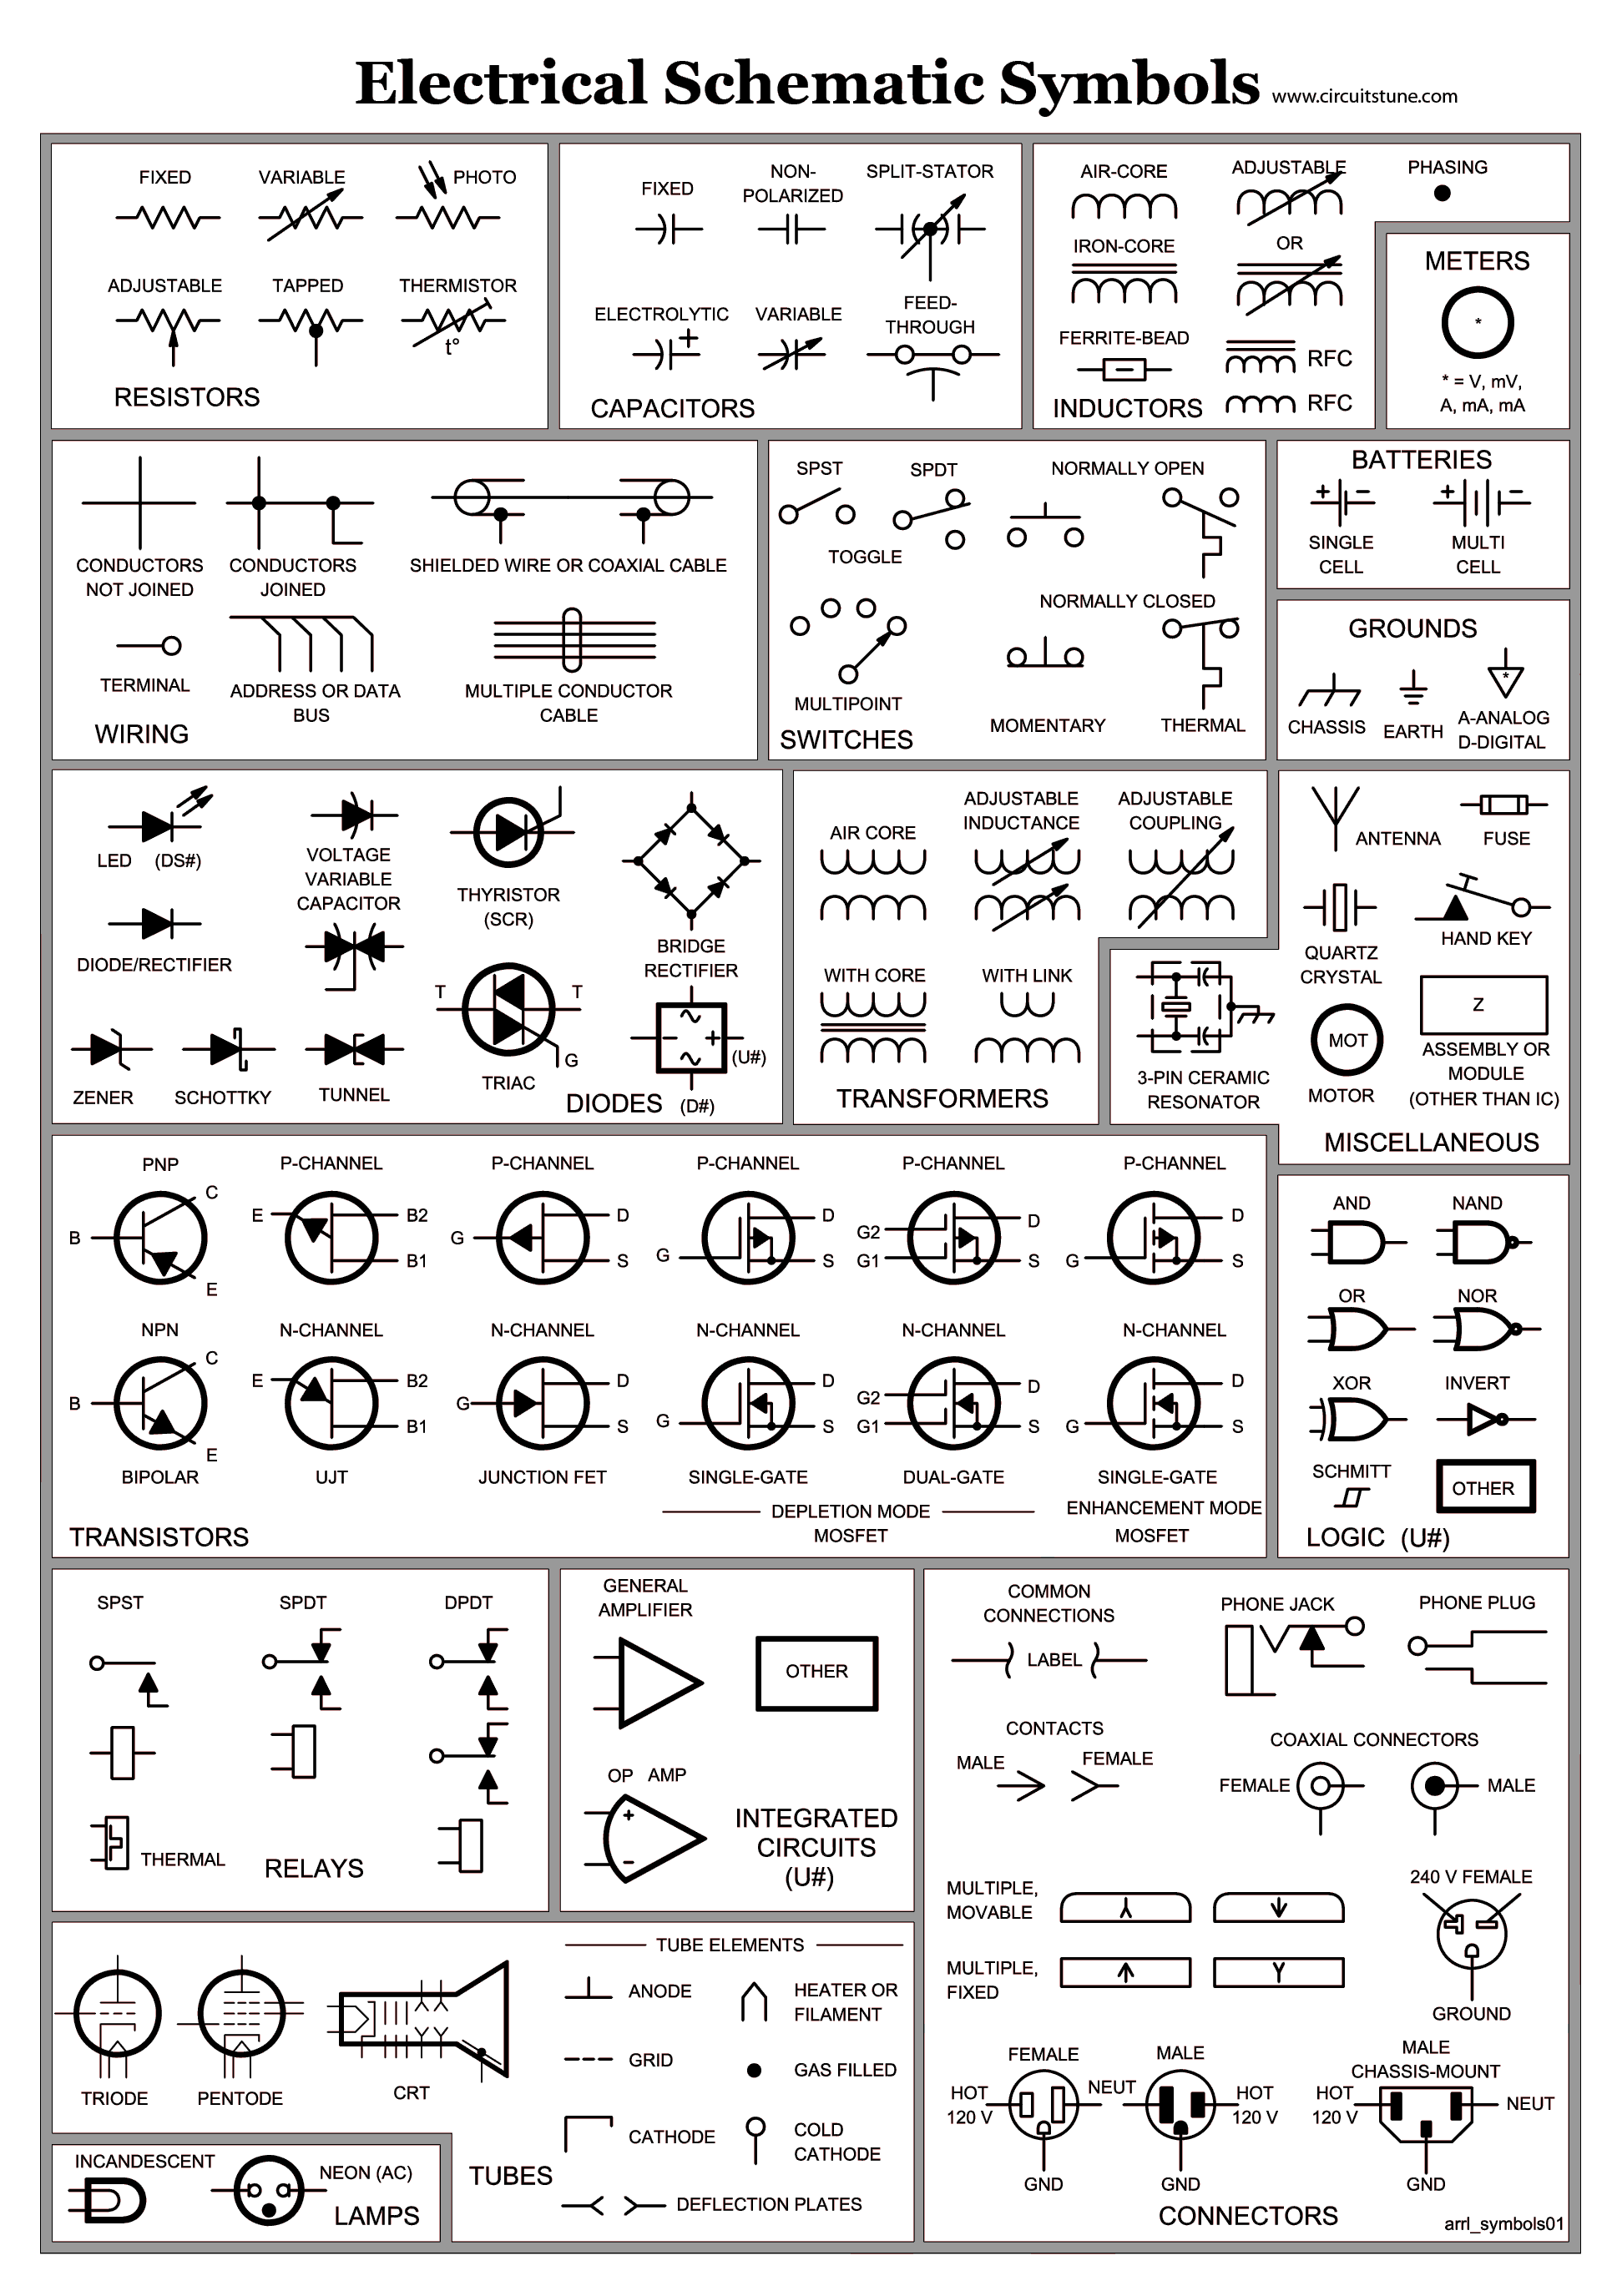 electrical schematic symbols wire diagram symbols automotive wiringelectrical schematic symbols wire diagram symbols automotive wiring schematic [ 1937 x 2751 Pixel ]